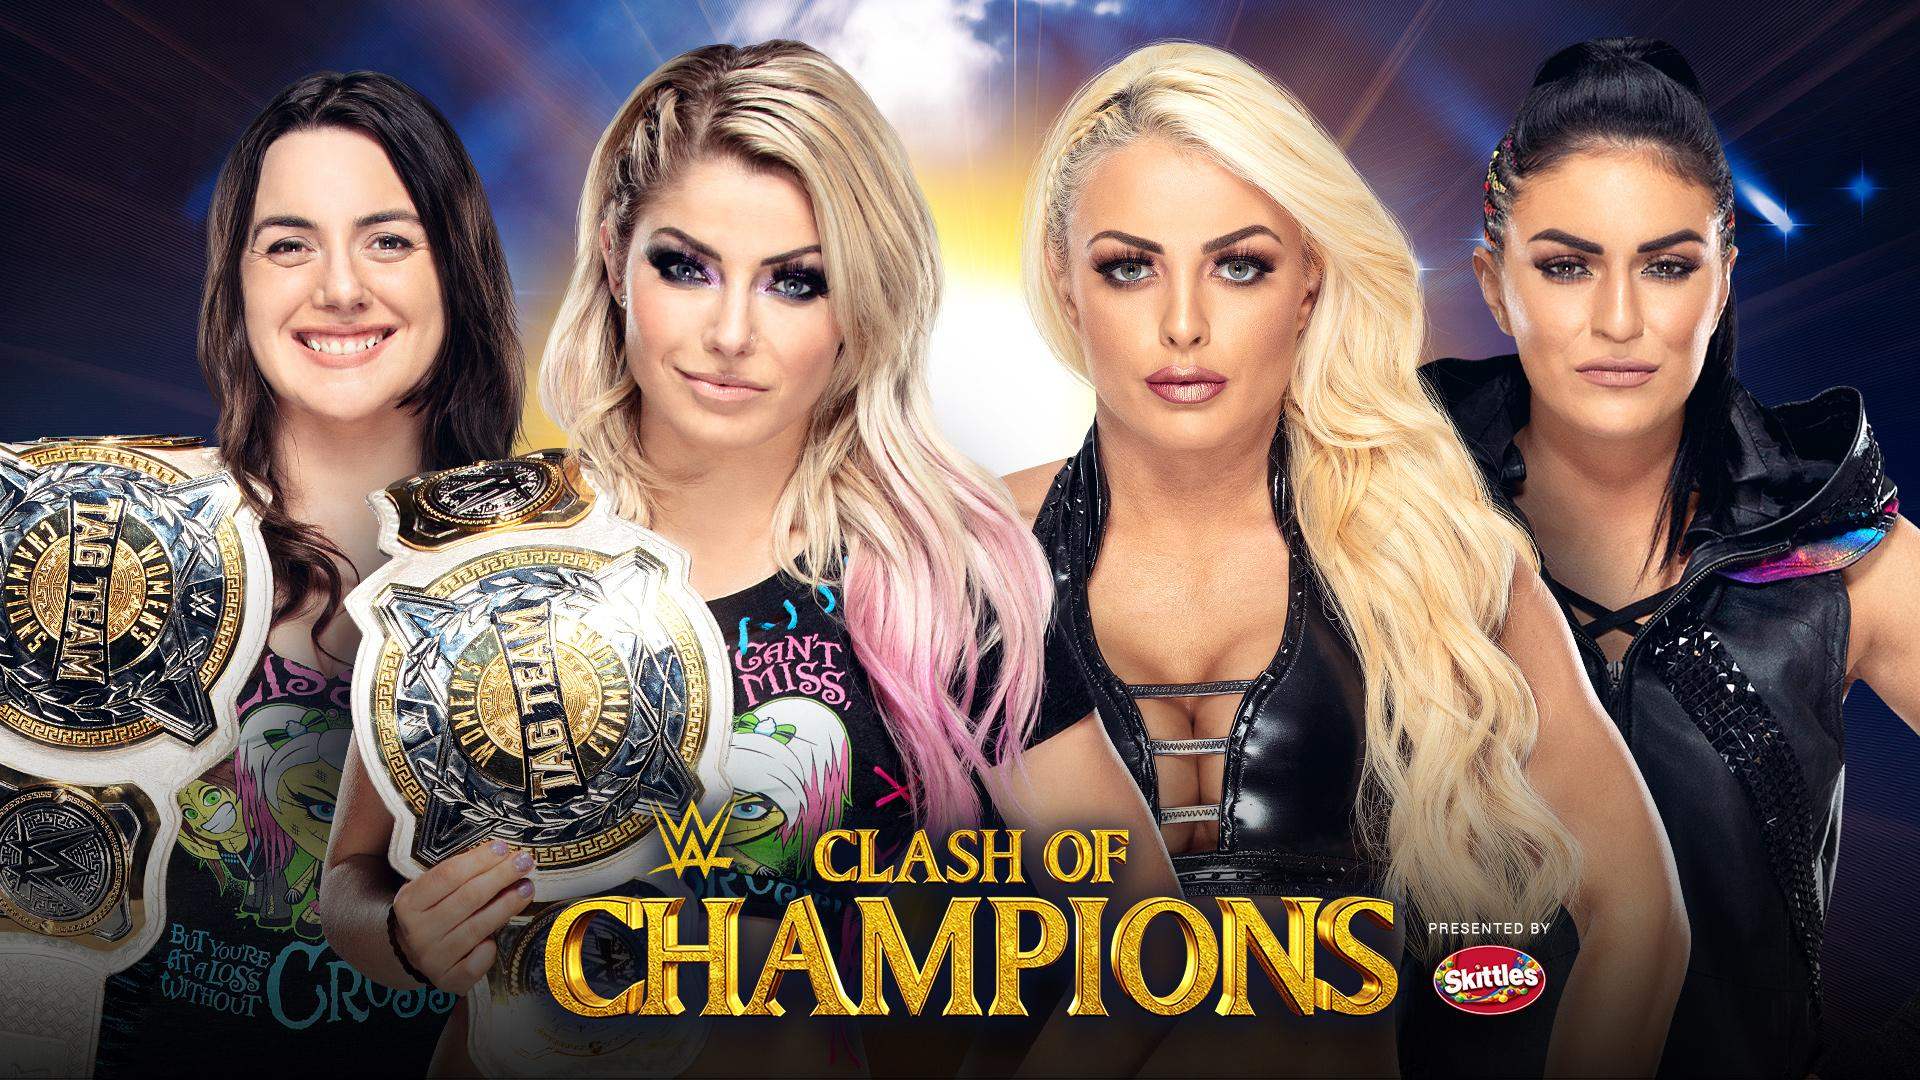 Women's Tag Team Championship will be defended at Clash of Champions